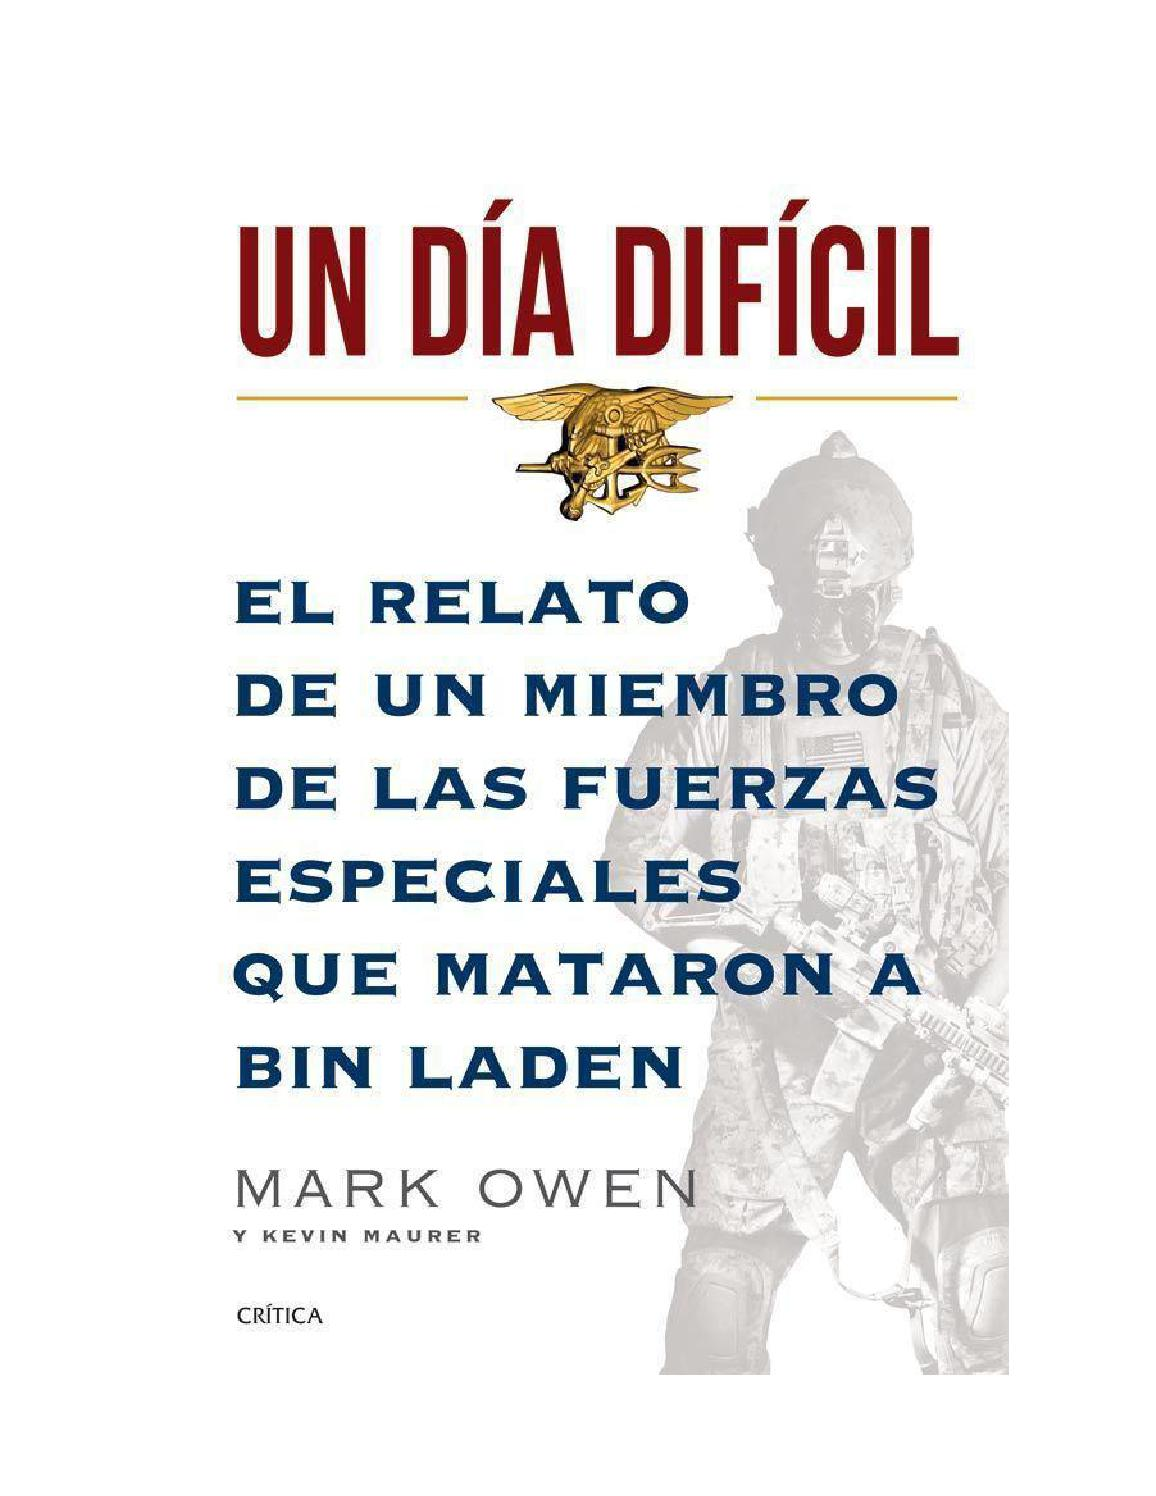 af4547ad8 Un dia dificil mark owen by Dionisio Mateo Castañeyra - issuu